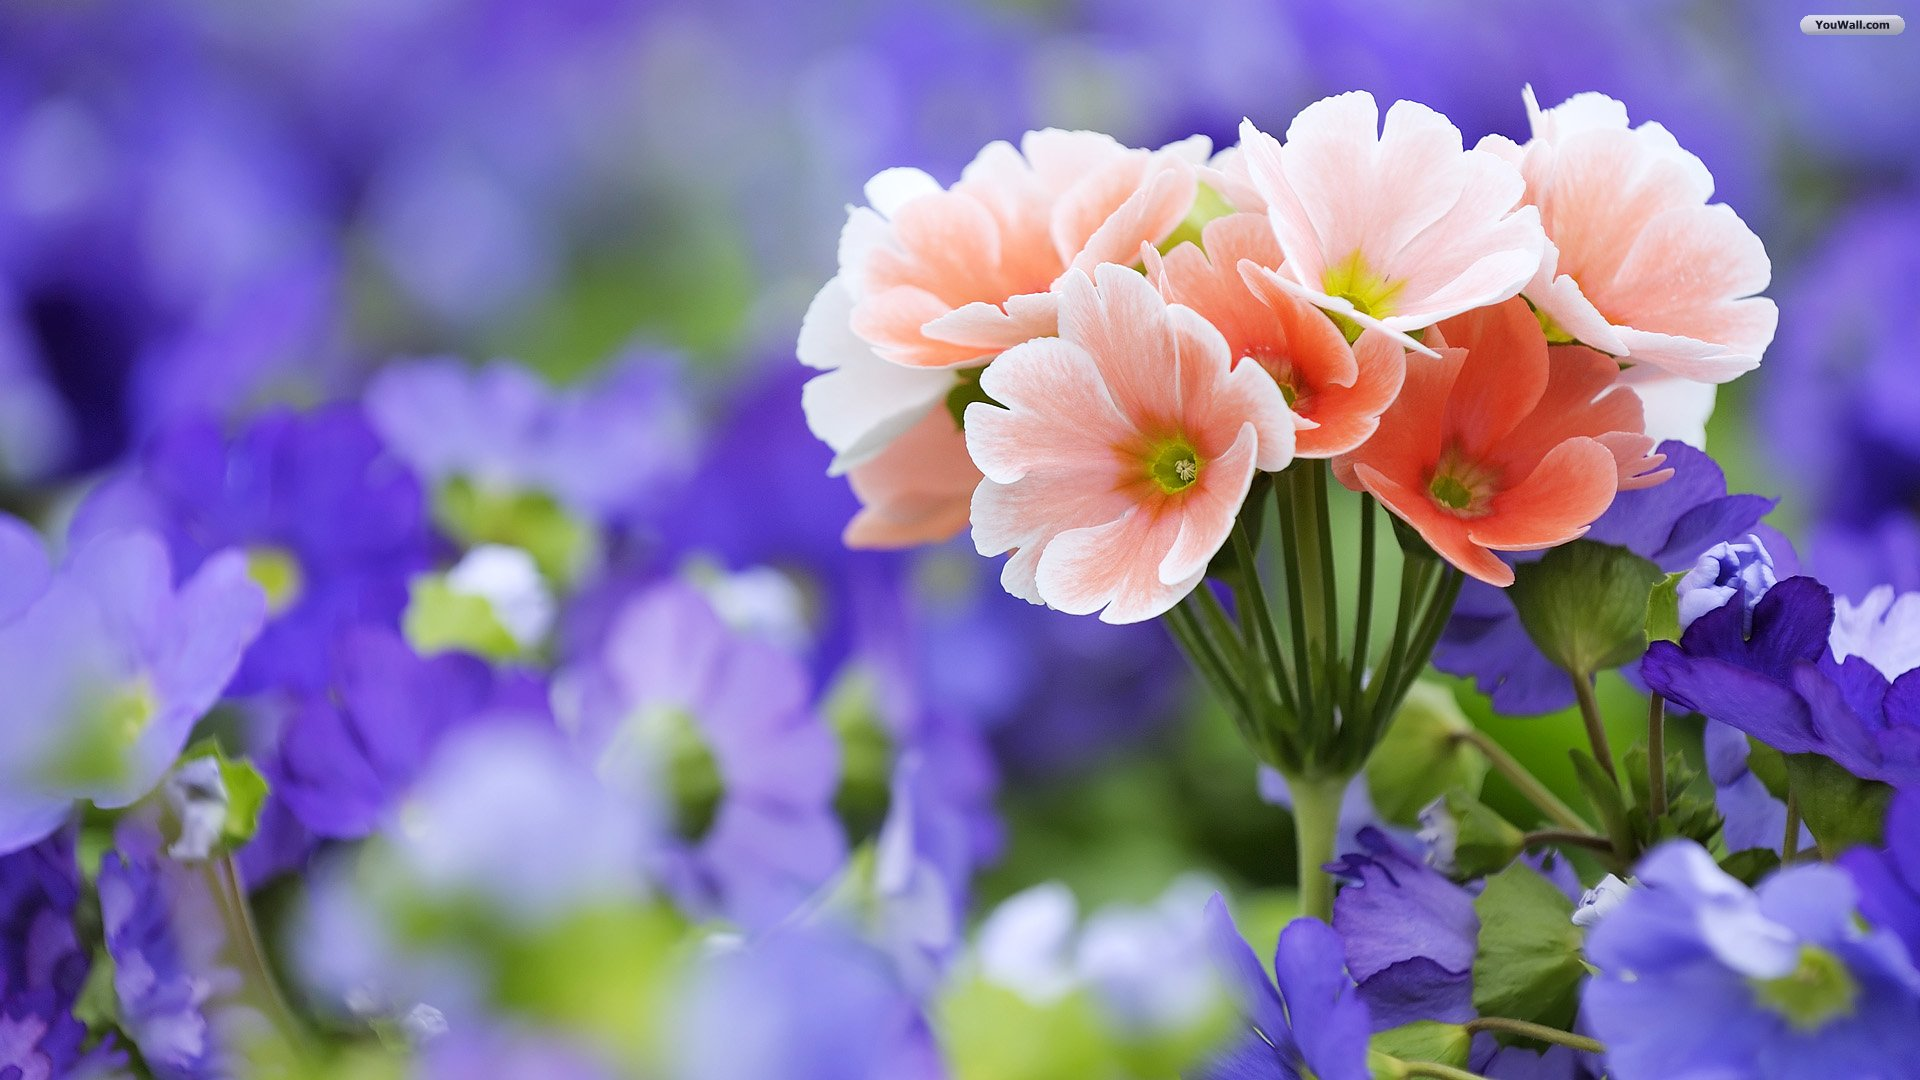 Worlds Top Beautiful Flowers Images Wallpaper Photos Free 1920x1080